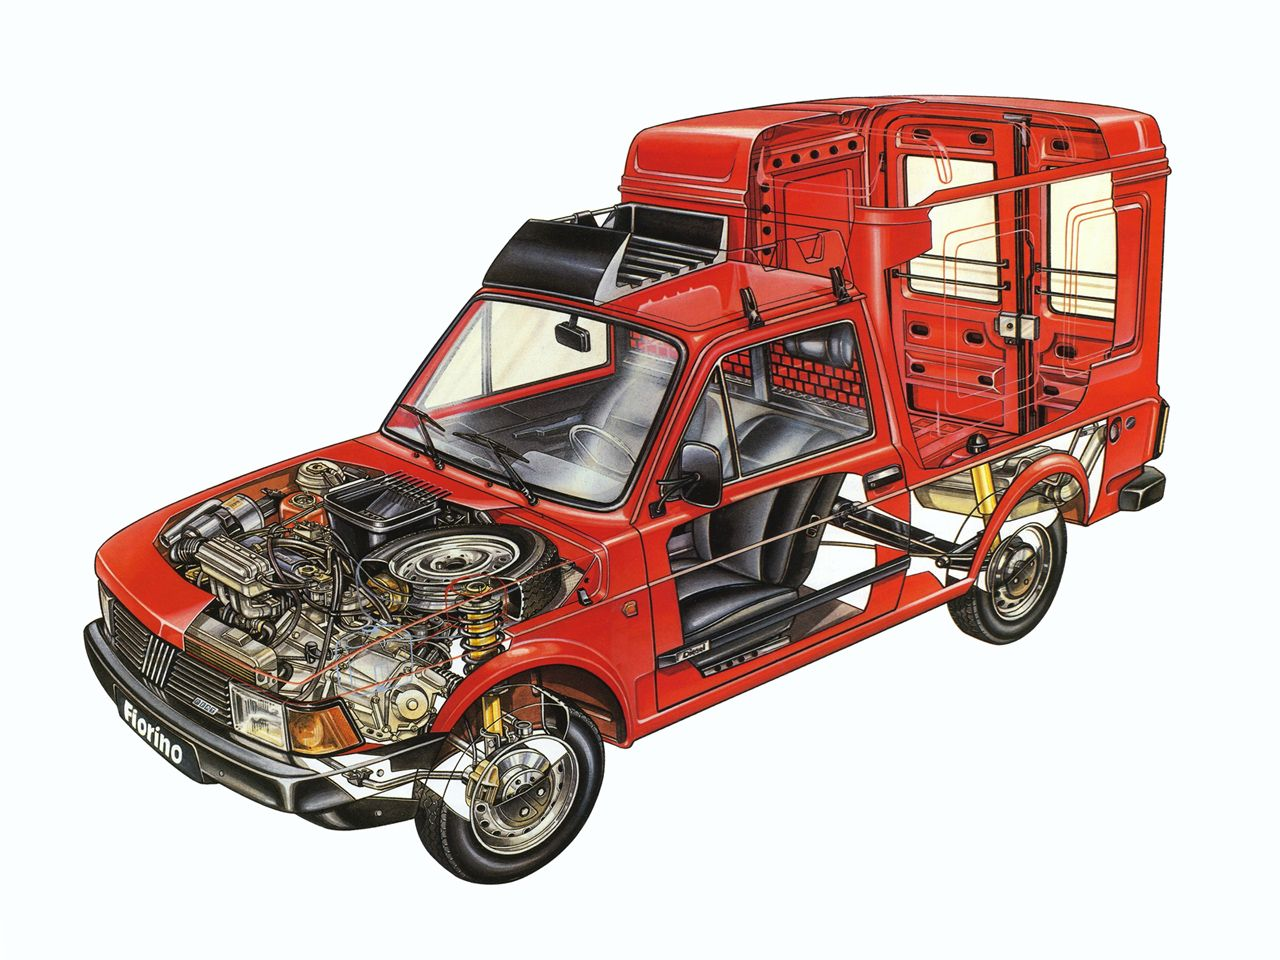 Mercedes benz 280 ge swb w460 1979 01 1990 pictures to pin - 1983 1987 Fiat Fiorino Illustration Unattributed